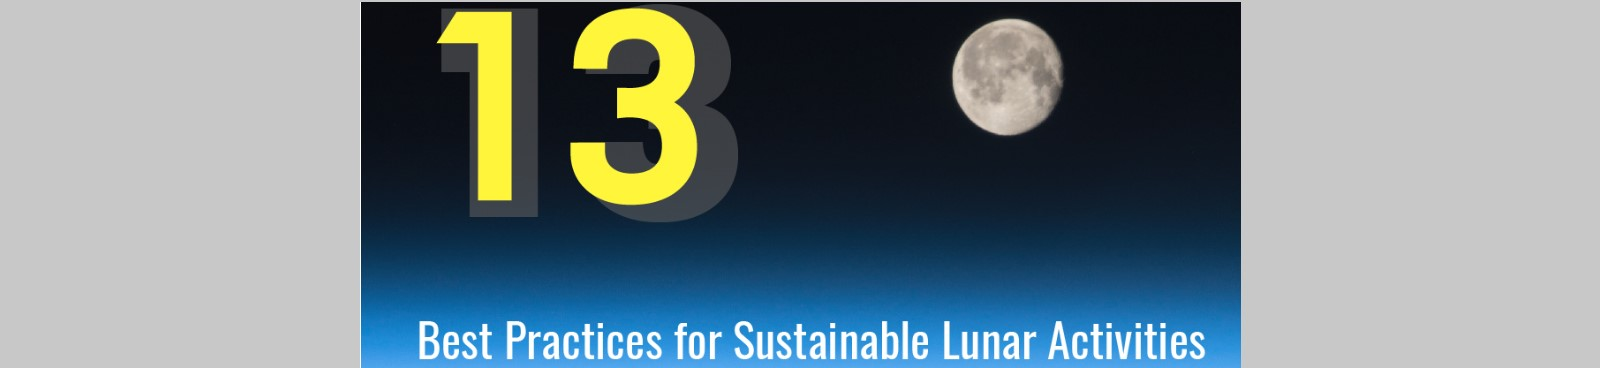 Press Release – Moon Village Association publishes Best Practices for sustainable lunar activities, Issue 1